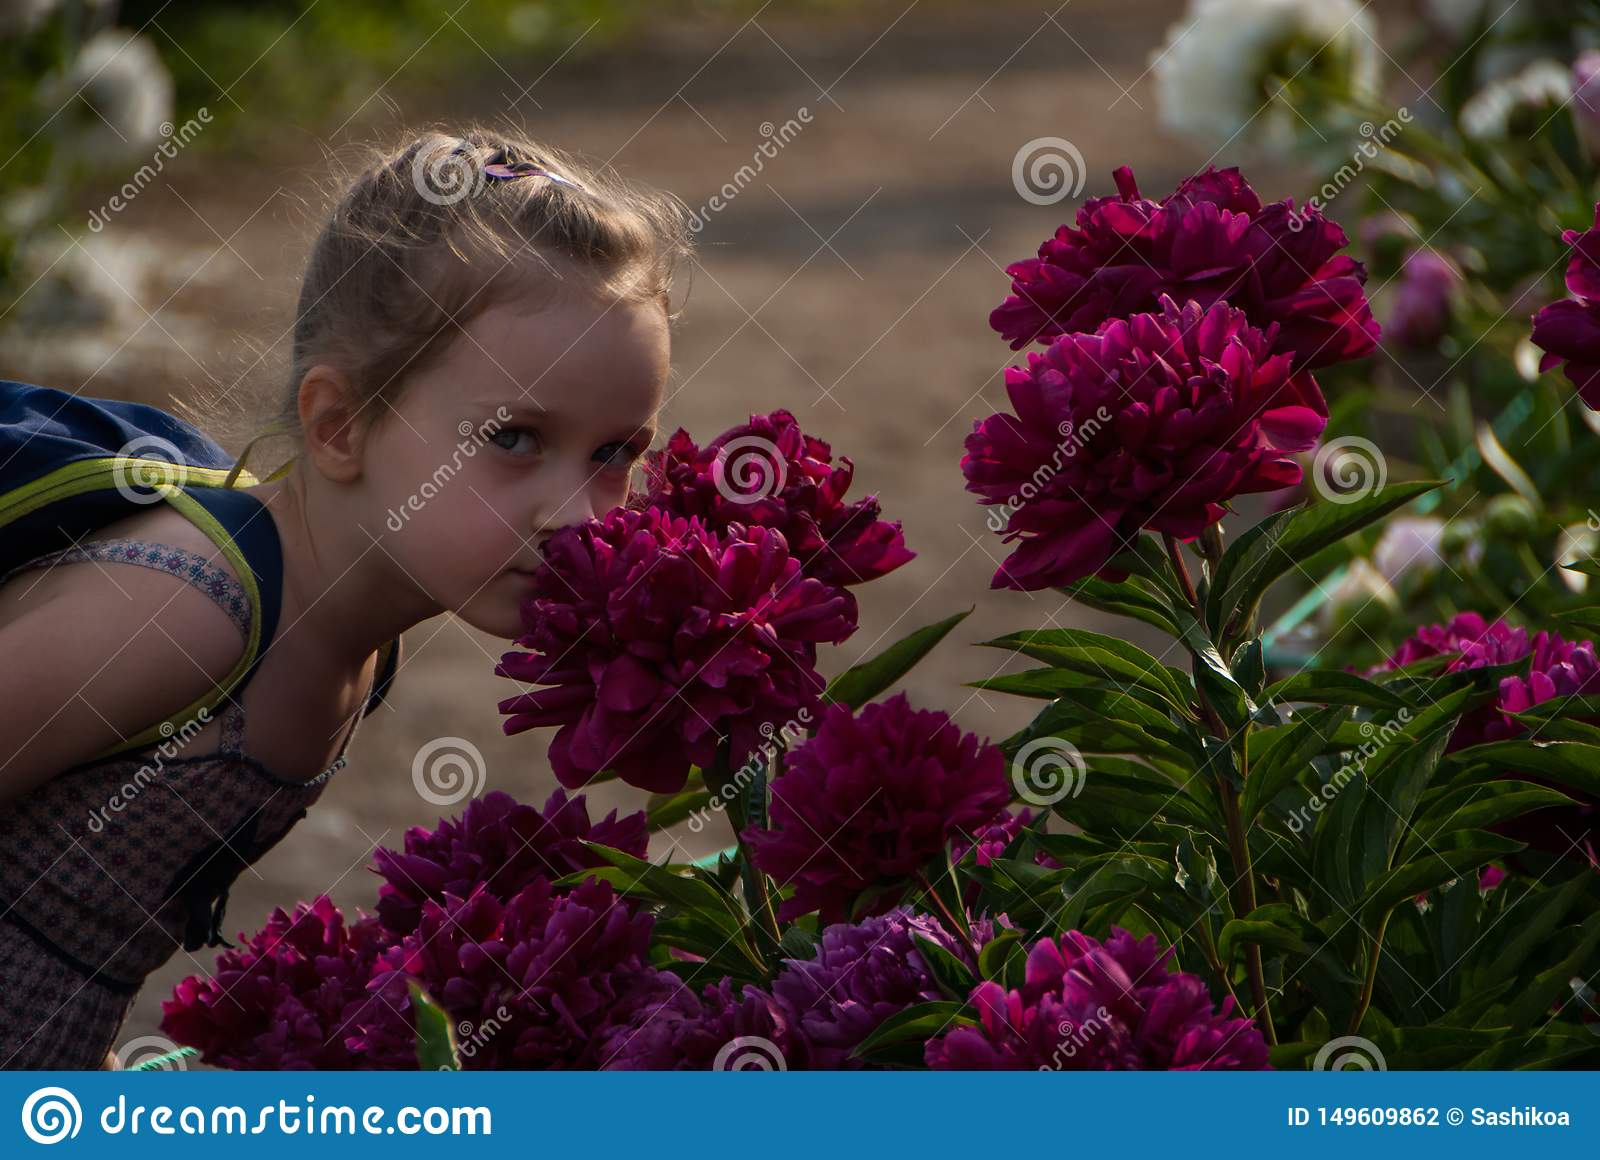 Small nice girl with beautiful eyes smelling peony flowers in park